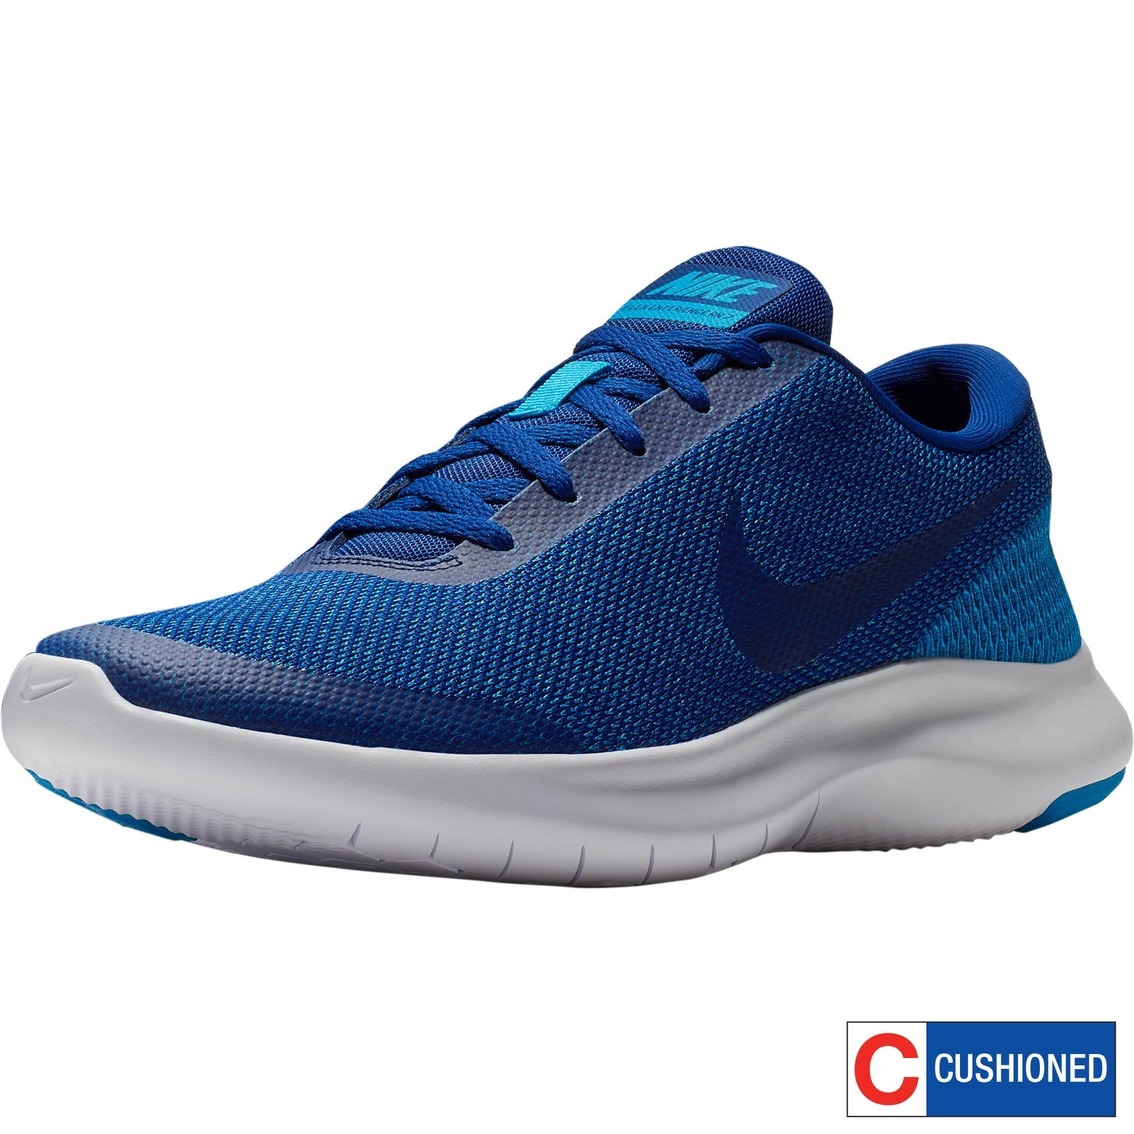 Nike Men's Flex Experience Rn 7 Running Shoes | Running